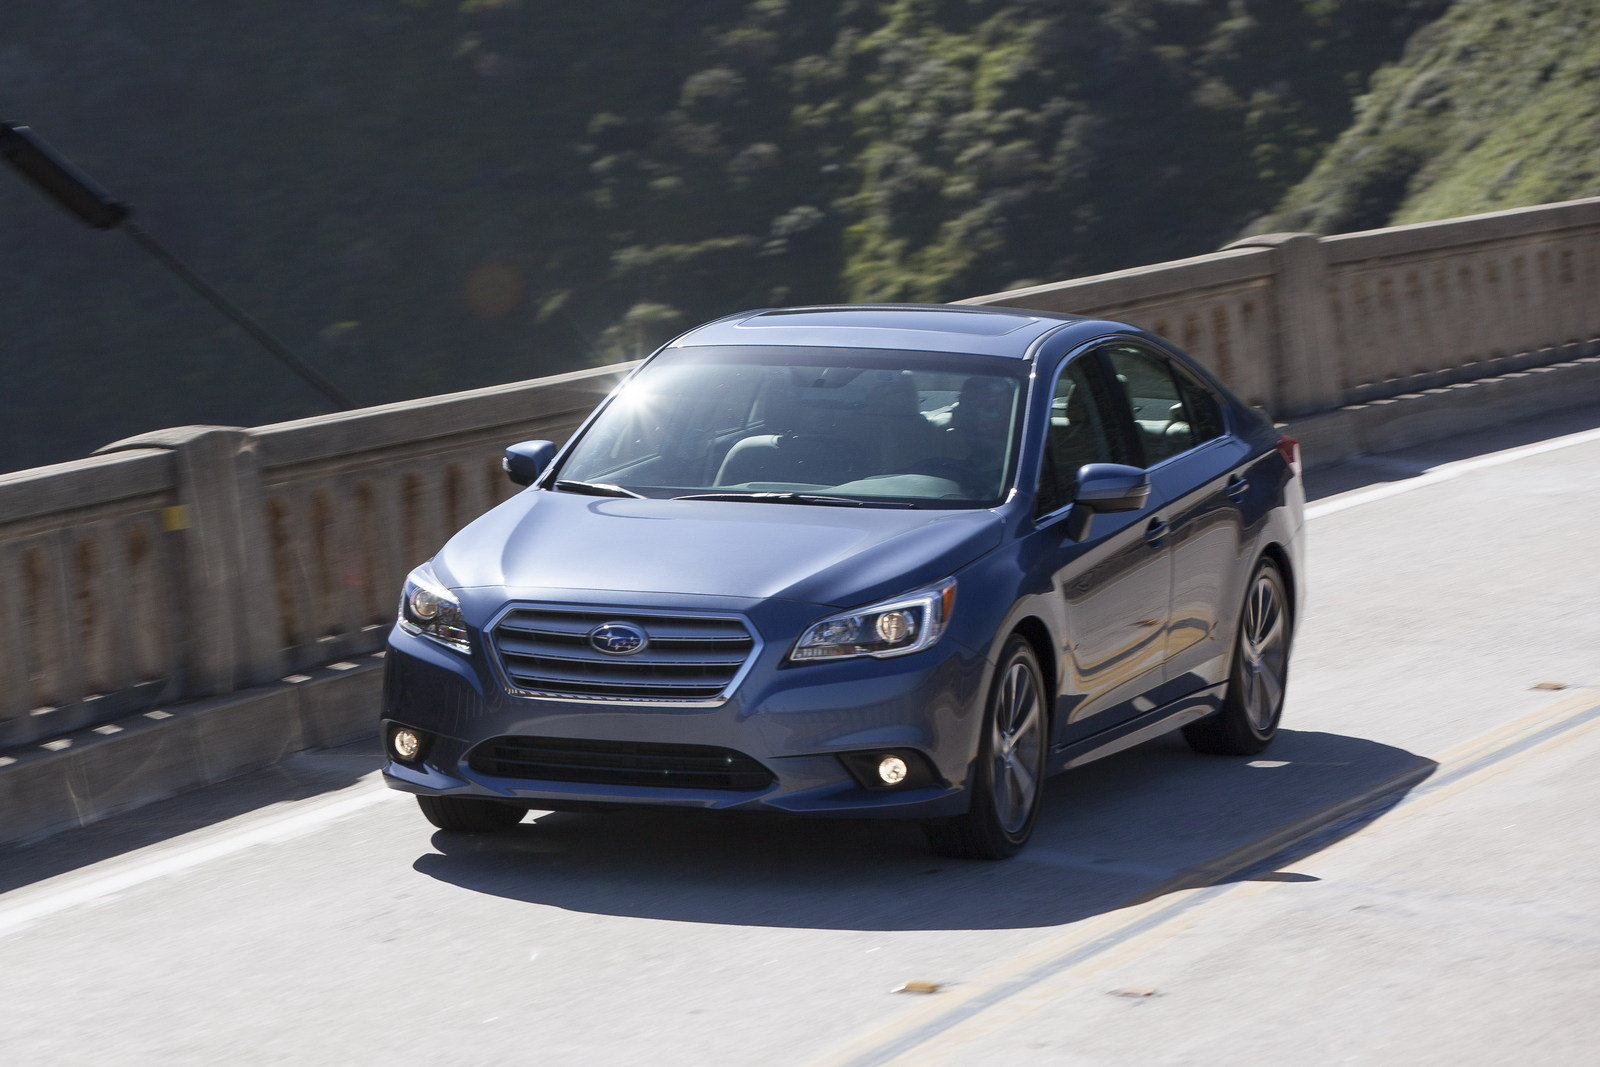 2015 - 2017 Subaru Legacy - Picture 553861 | car review @ Top Speed